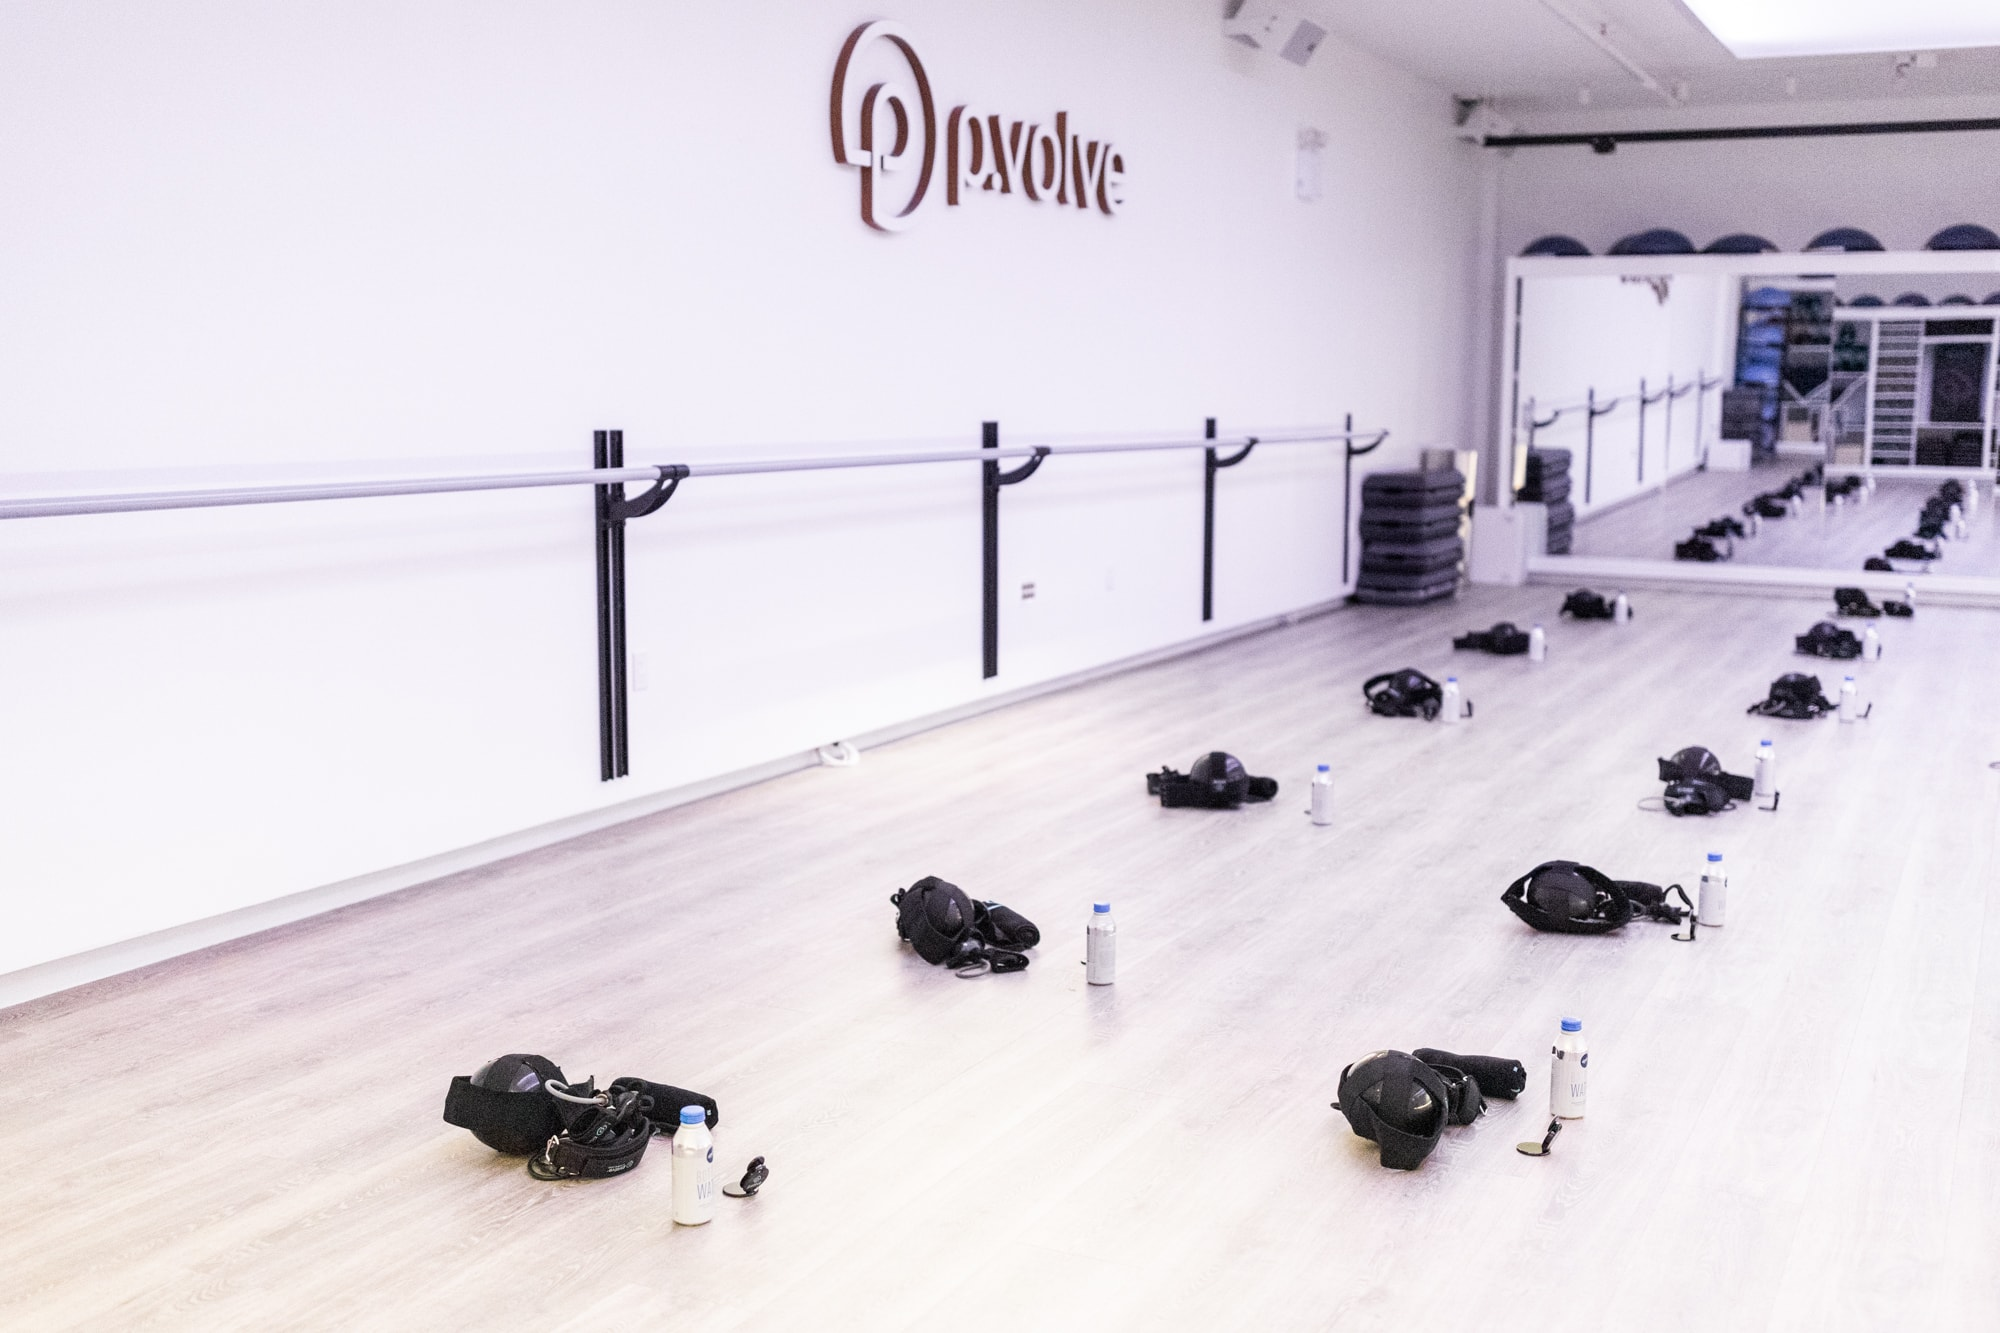 Looking for a workout that would leave you lying on the floor when it's over? Check out the new streaming service from p.volve fitness + a studio workout video! #workout #lowimpact #onlineworkout #resistancetraining